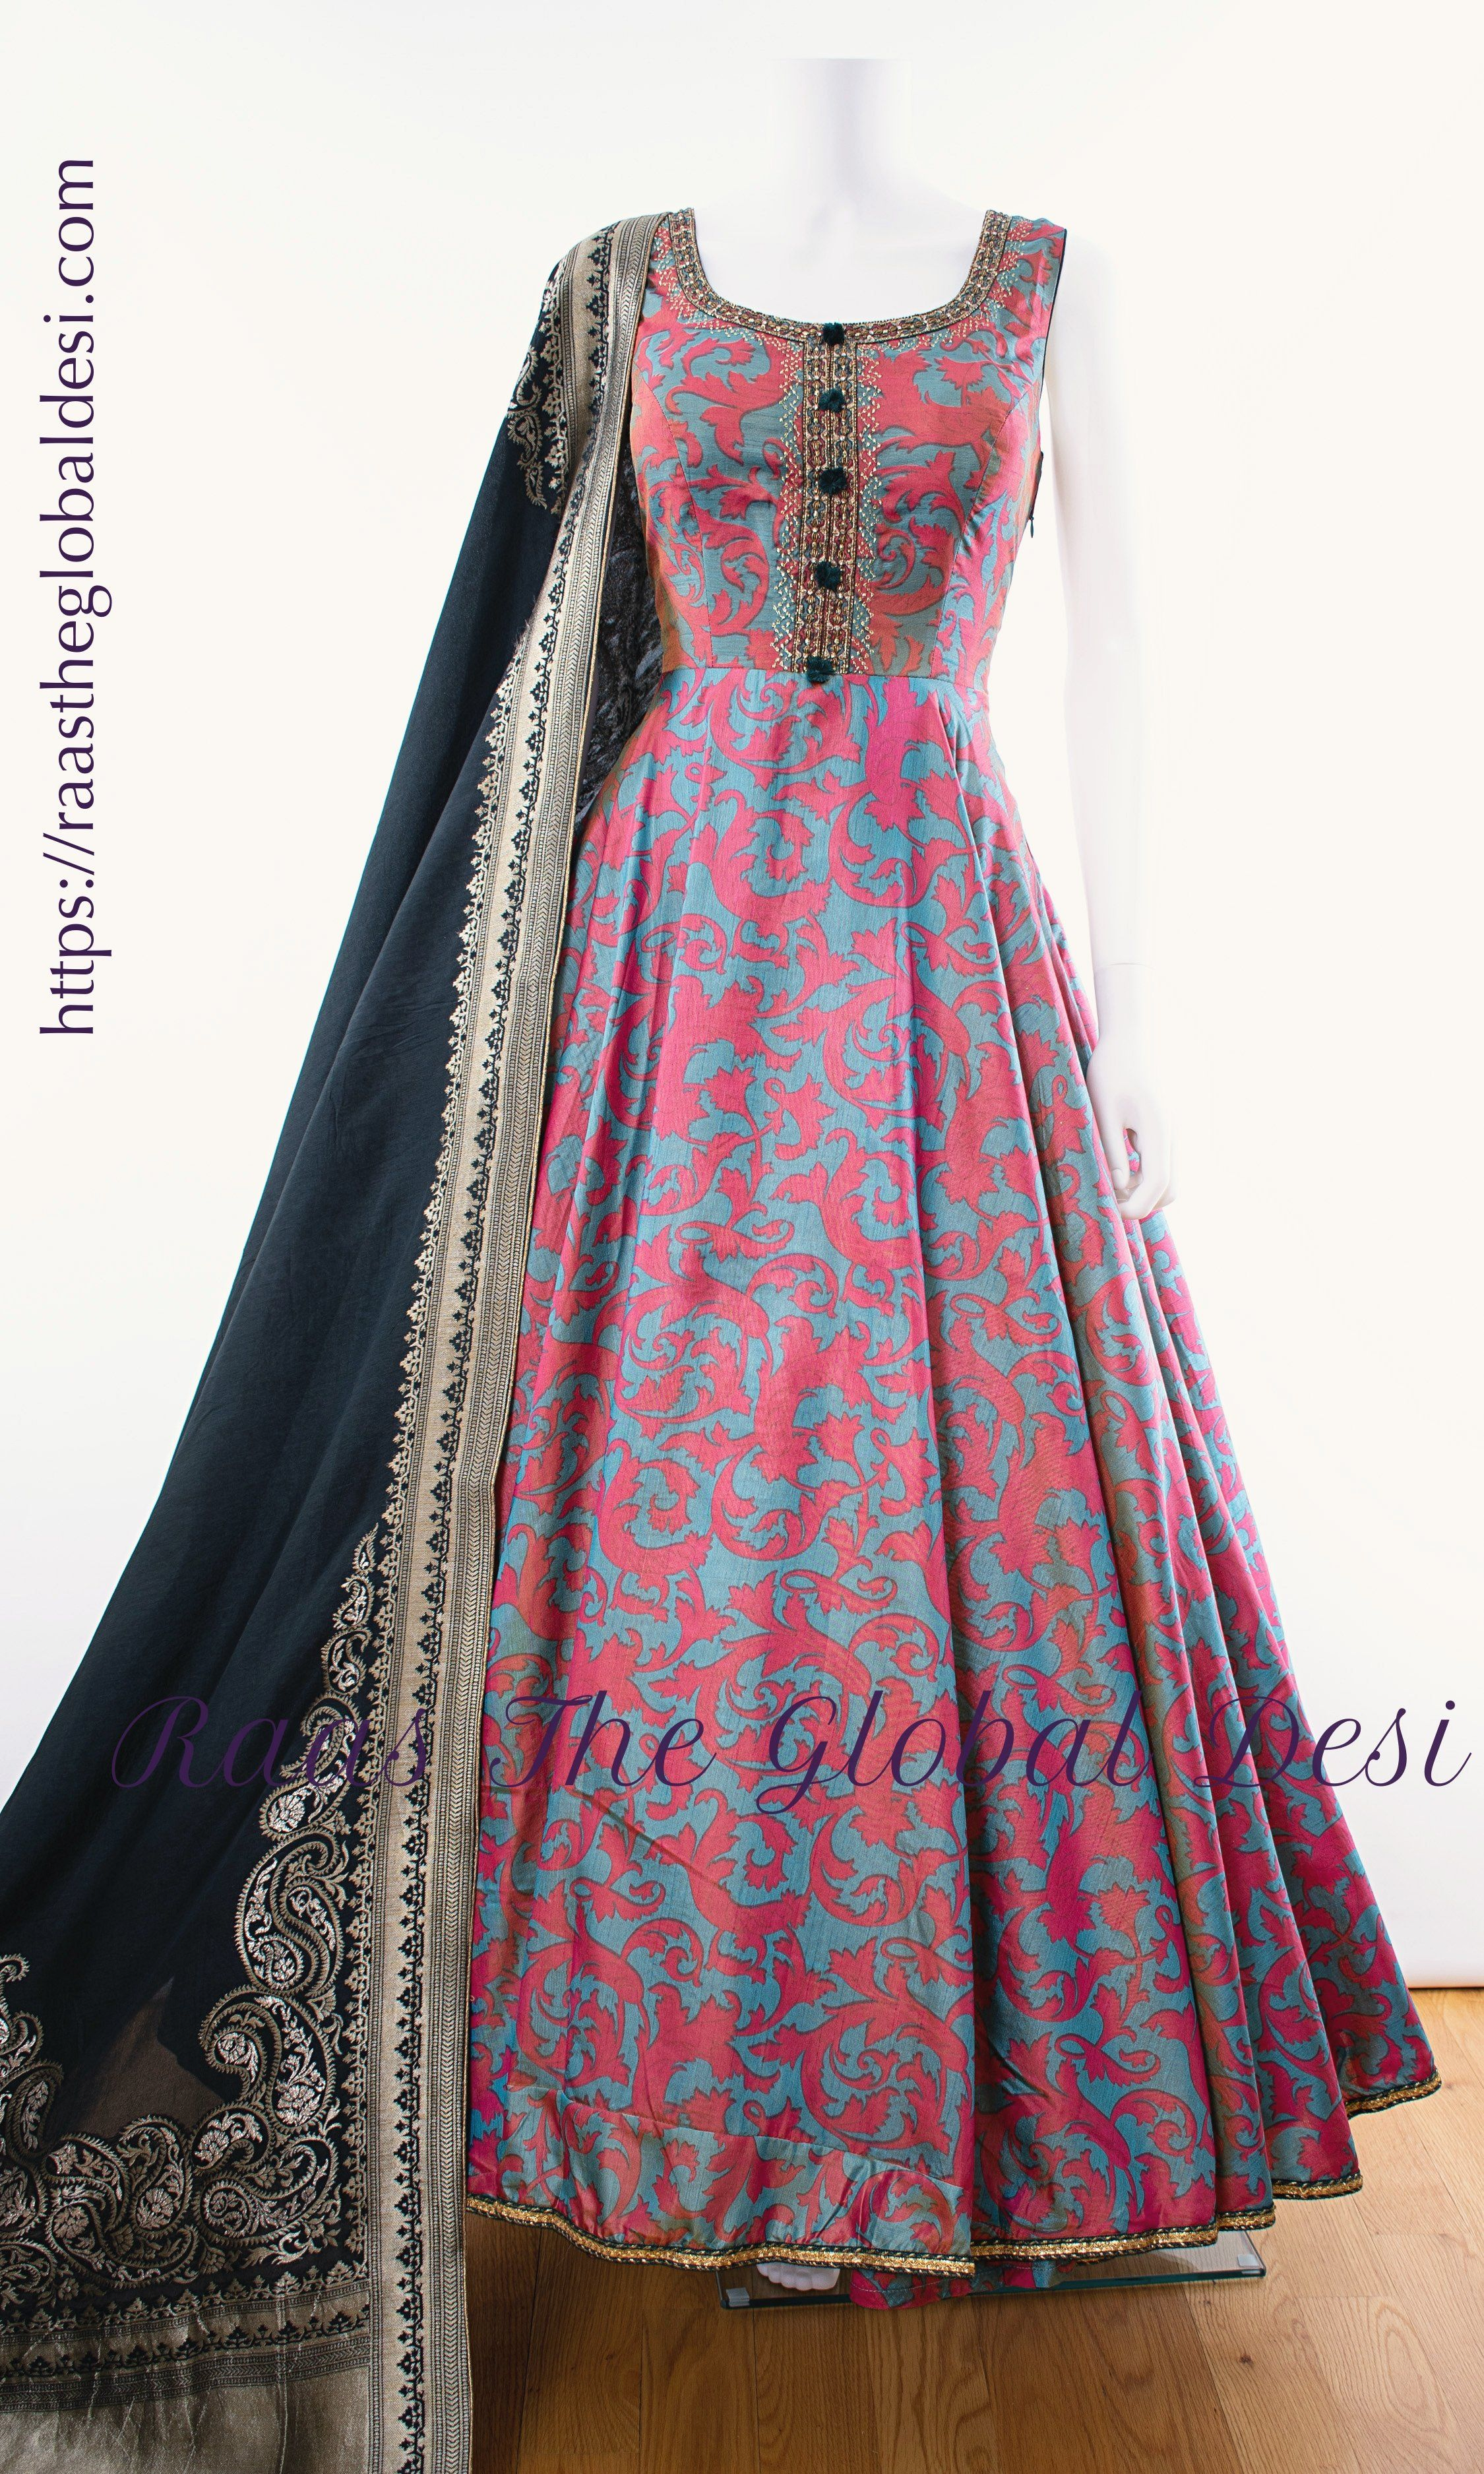 AG1590 in 2020 Indian dresses, Indian outfits, Designer